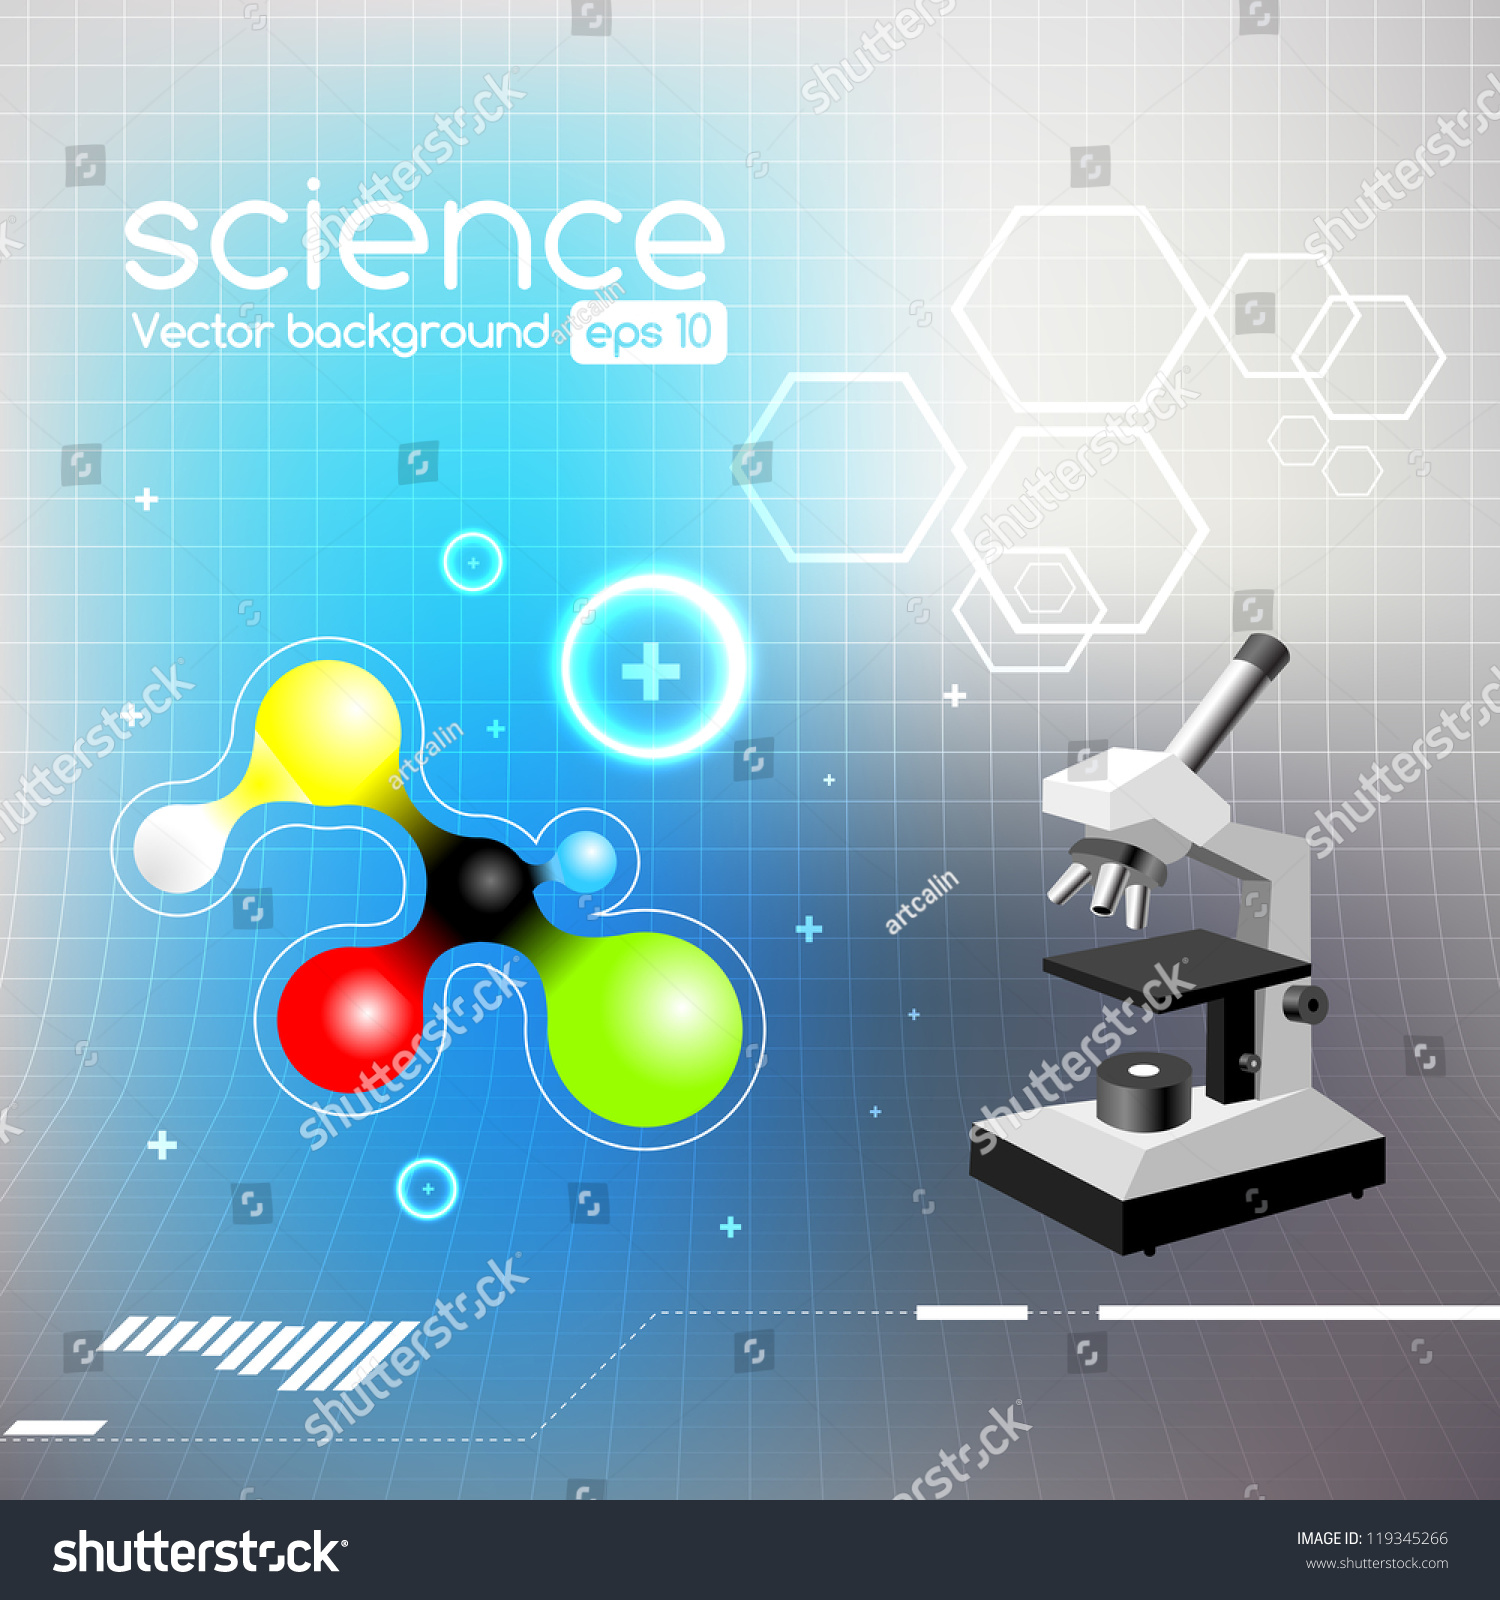 science and technology wallpaper - photo #48